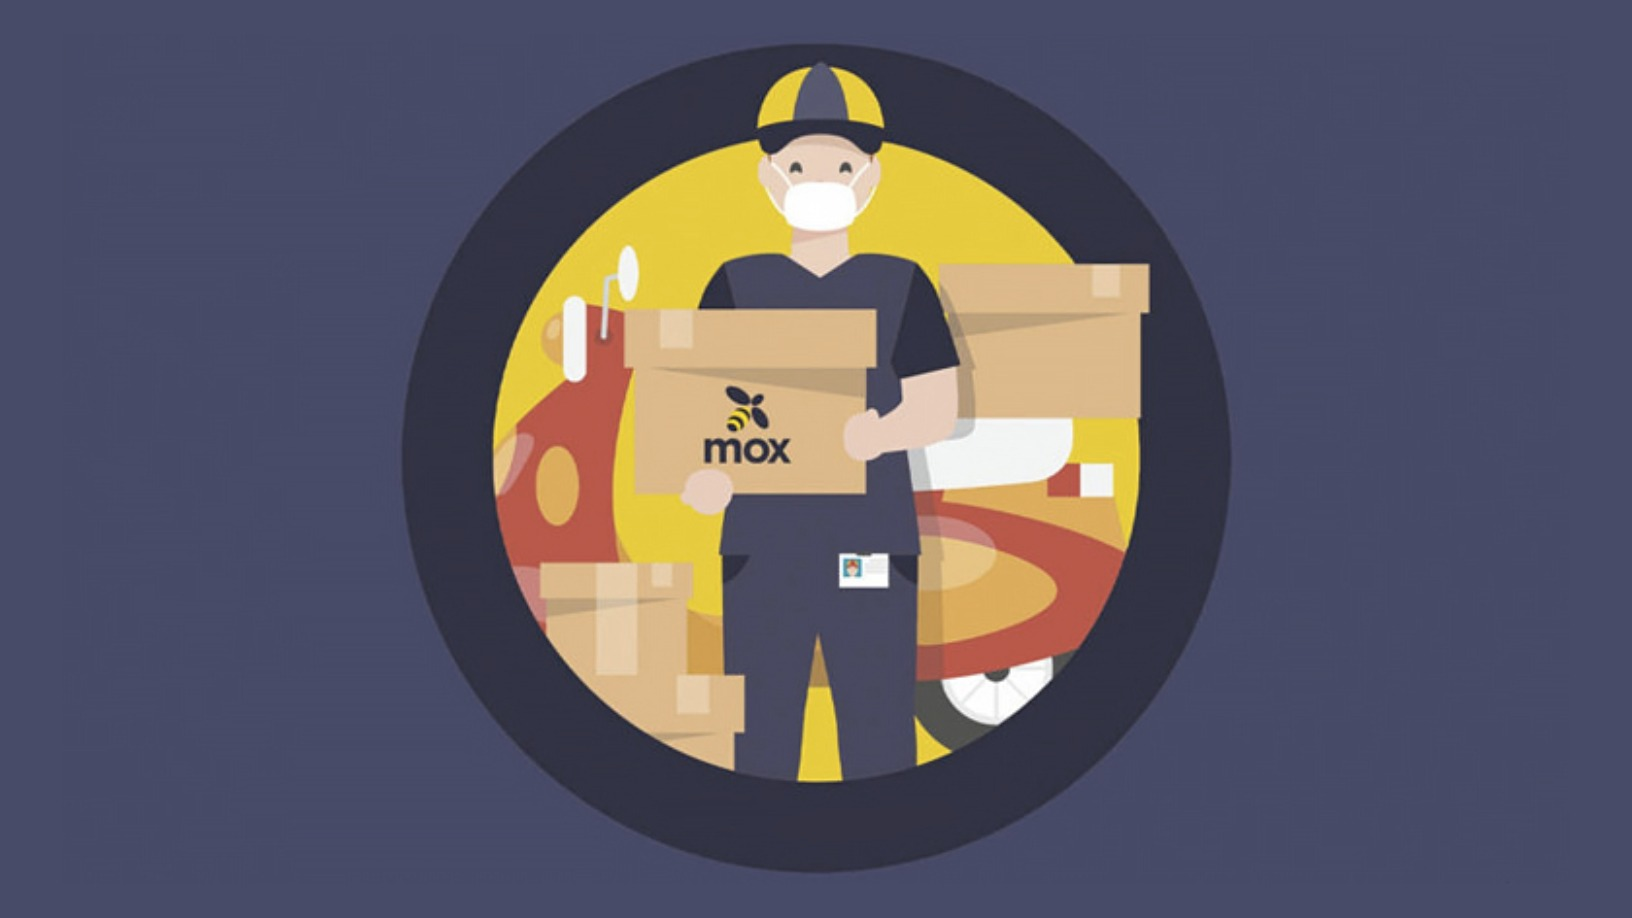 Last-mile delivery tech pioneer Mox expands into e-commerce amid Covid-19 online shopping surge